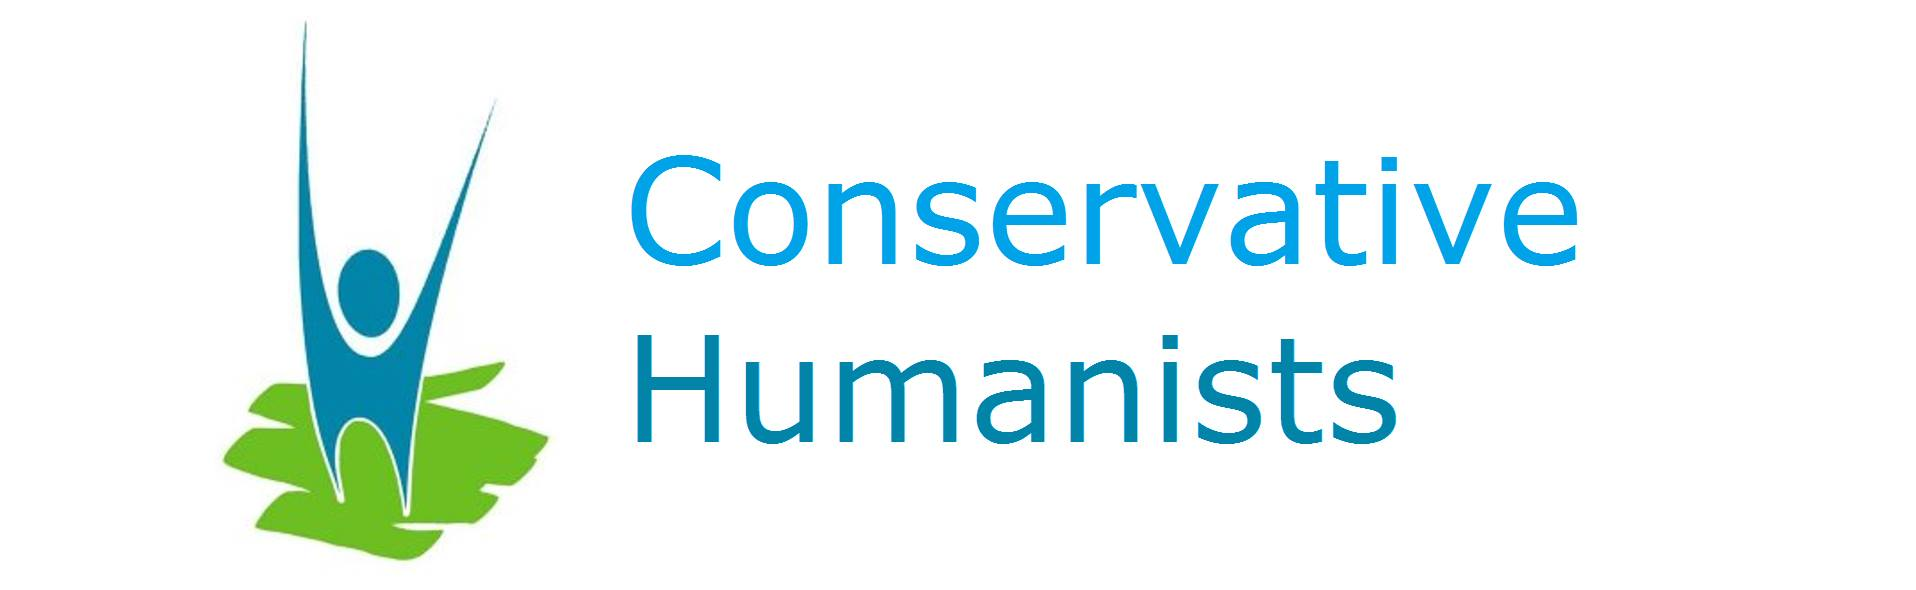 "conservative humanists association"" border="